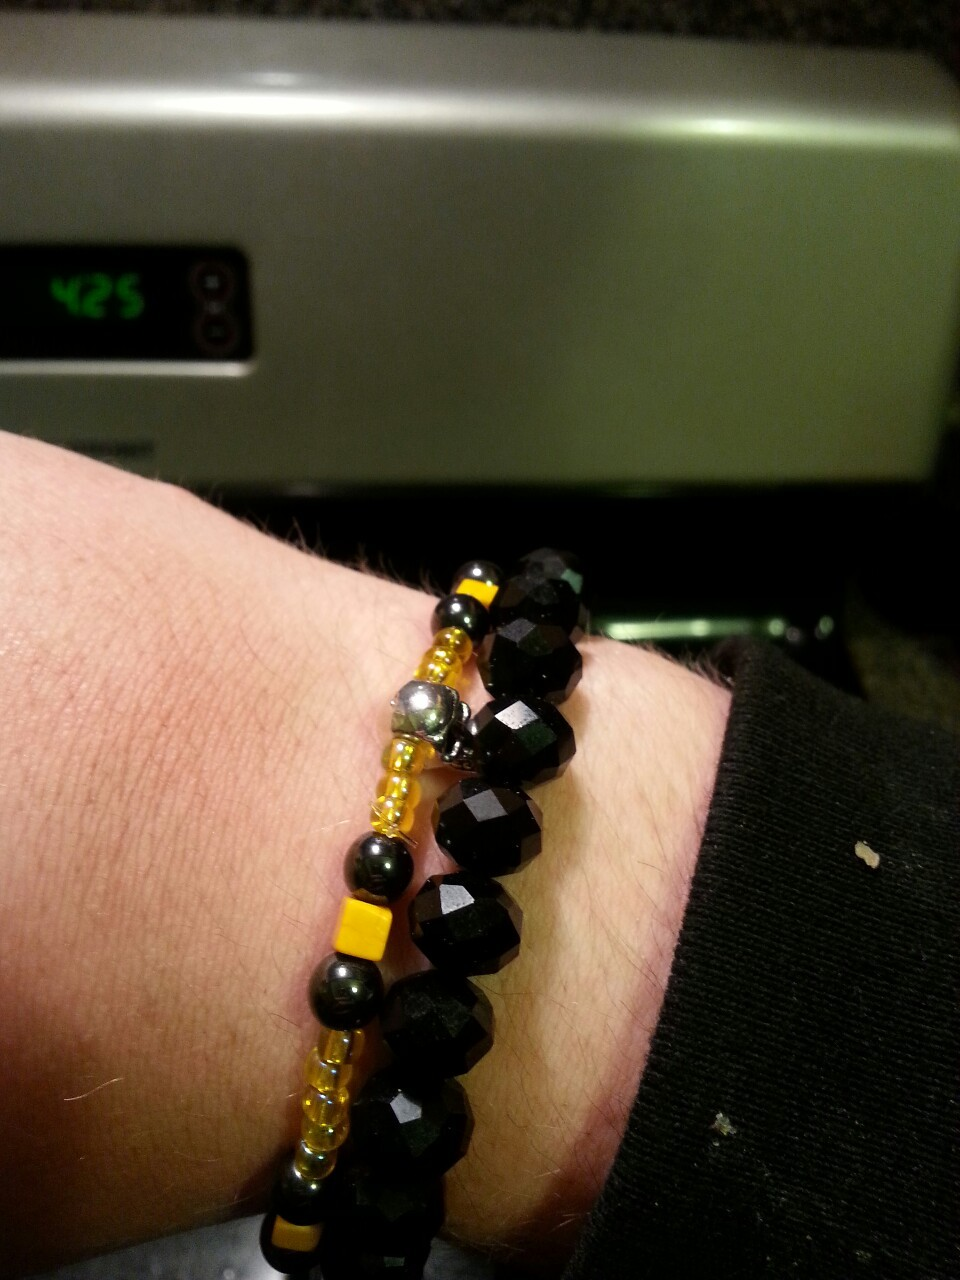 Finally a yellow and black bracelet.